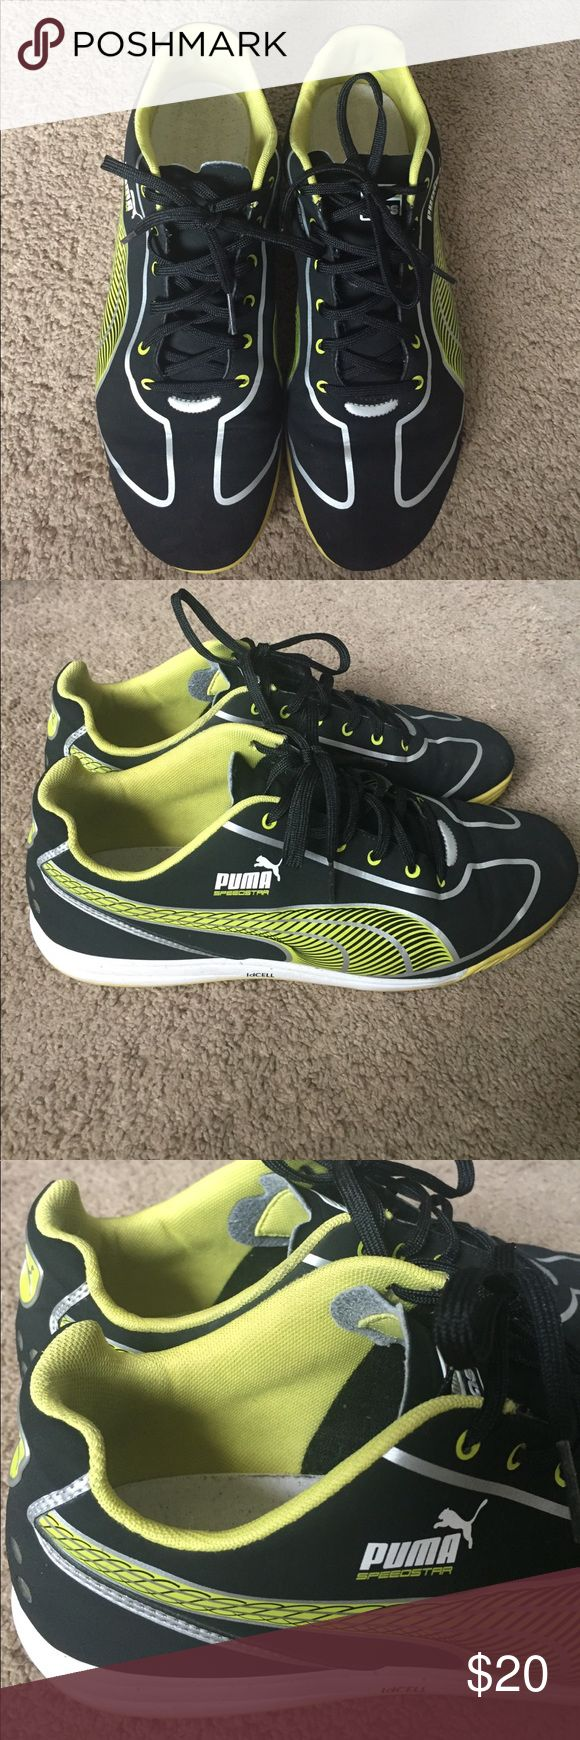 PUMA Speedstar sneakers size US Men 9 Excellent condition PUMA sneakers for men.  Only worn to school a handful of times.  Size US Mens 9. No holes or rips or tears.  Yello on black with white soles. Puma Shoes Sneakers